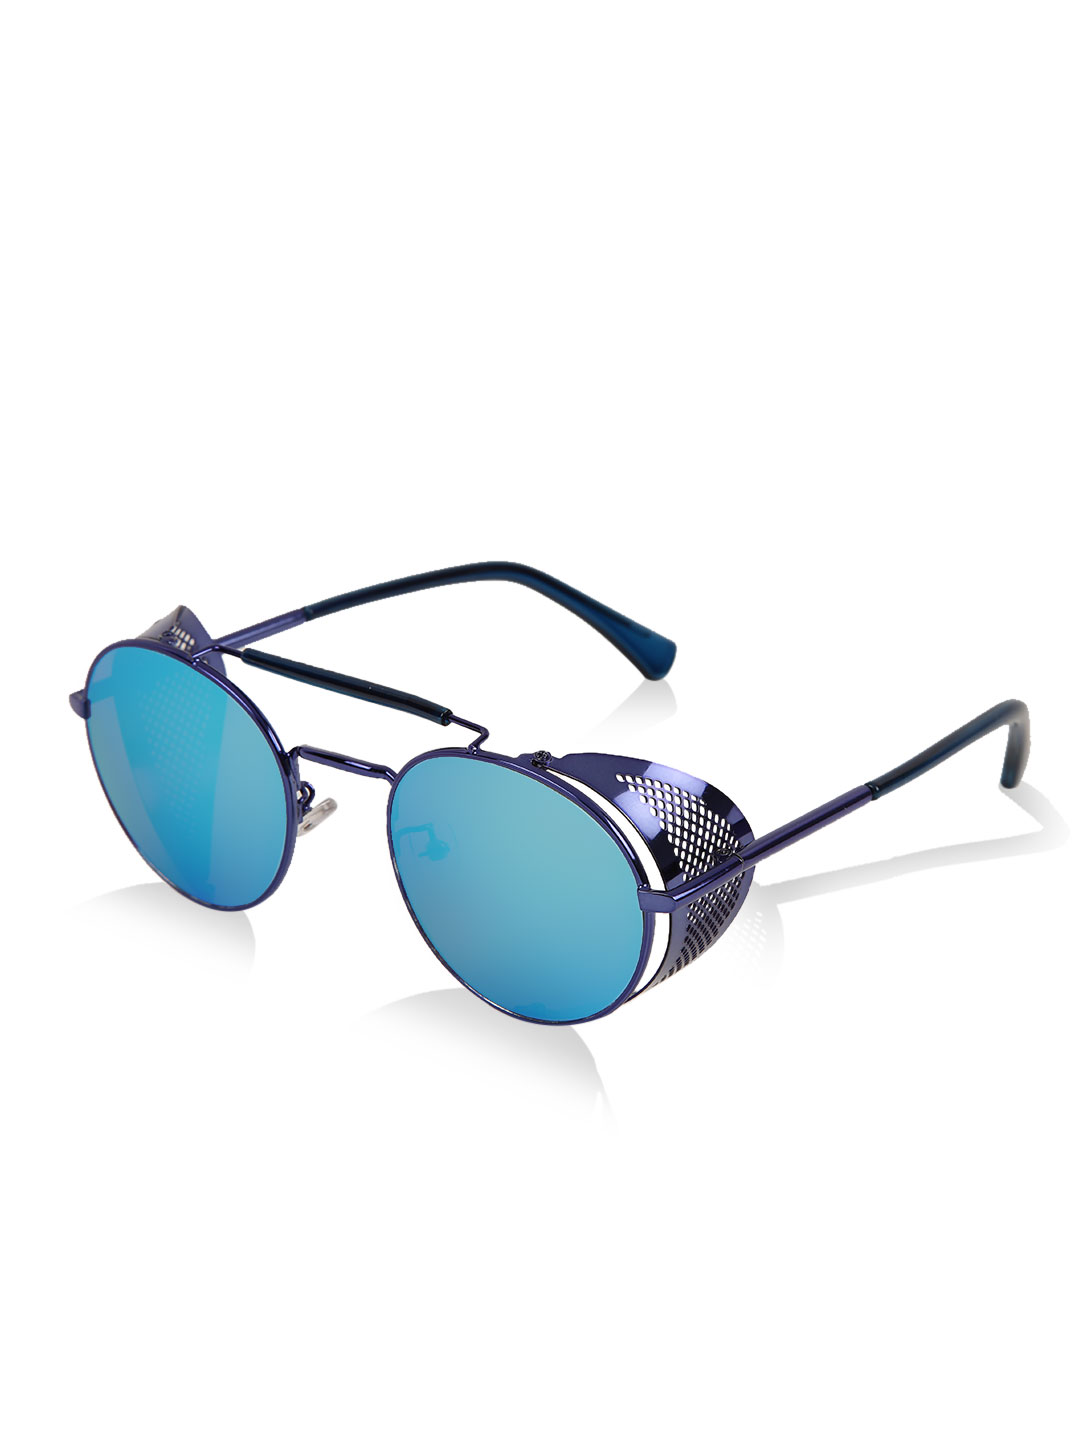 Jeepers Peepers Blue Round Retro Sunglasses 1